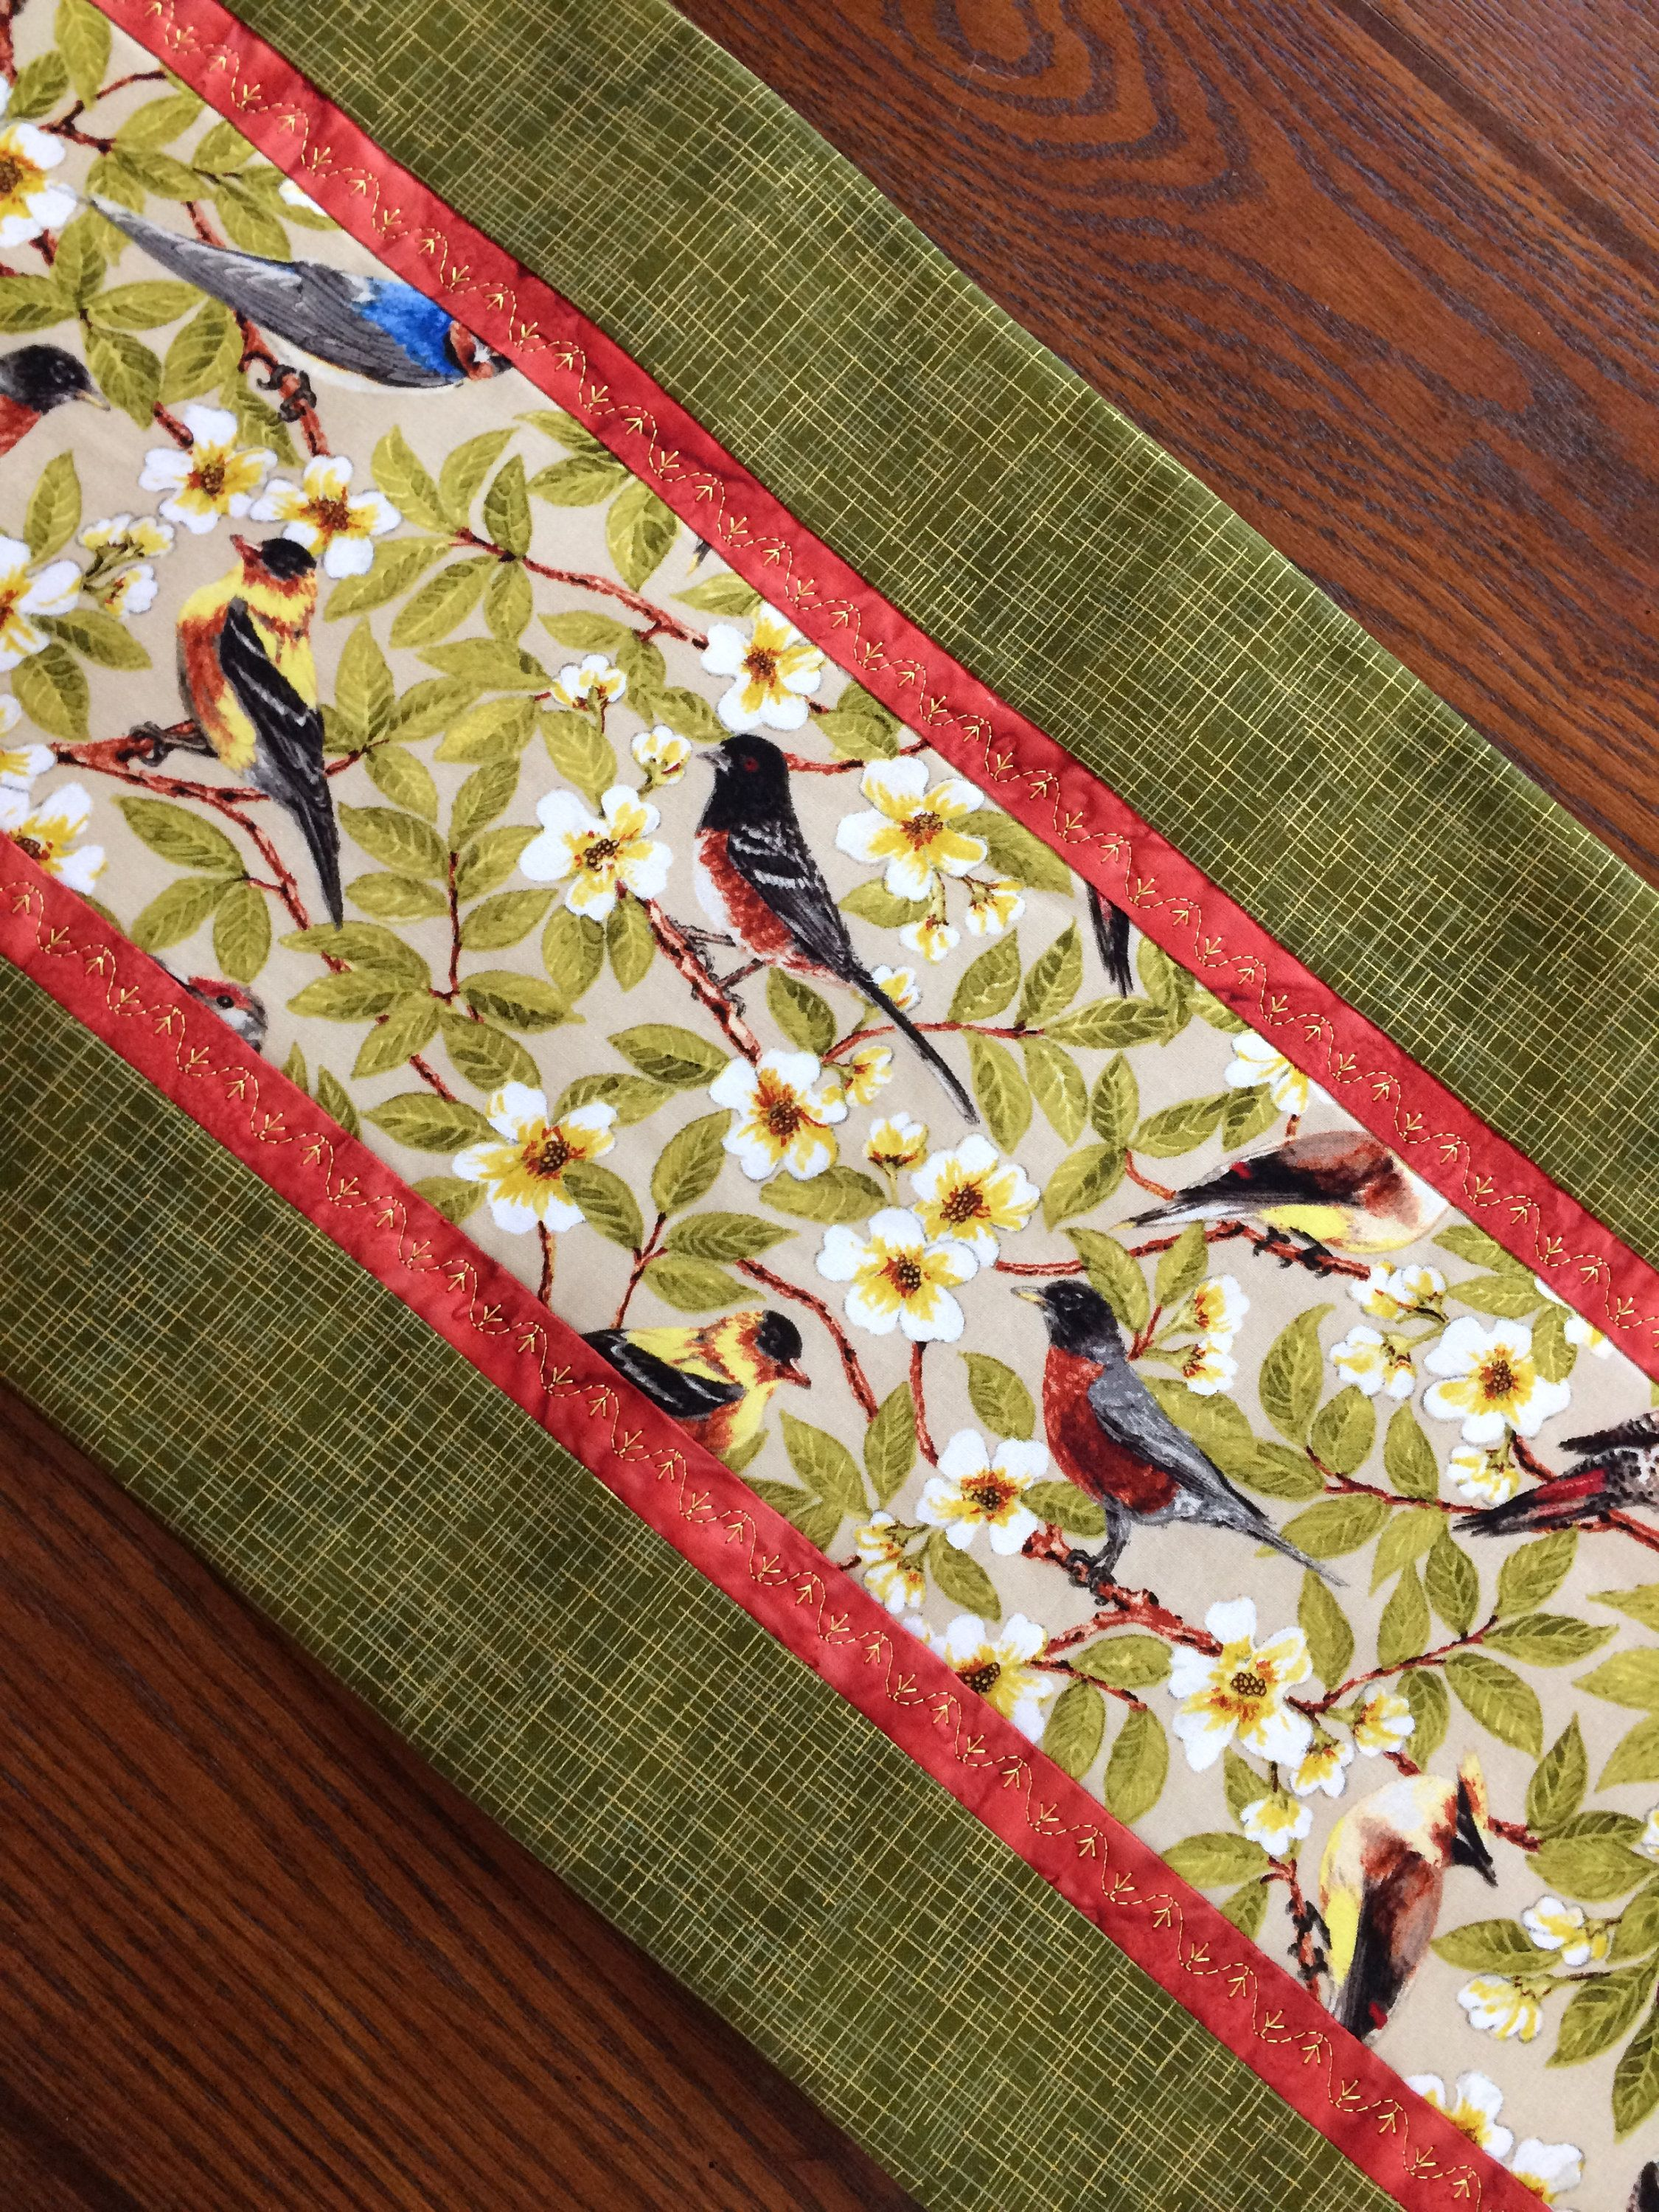 Charmant Bird Table Runner, Woodland Birds And Dogwood Blooms, Floral, Housewarming  Gift Ideas, Gift Idea, Elegant Table Decor, Wedding Gift Idea By  AlidanCreations ...